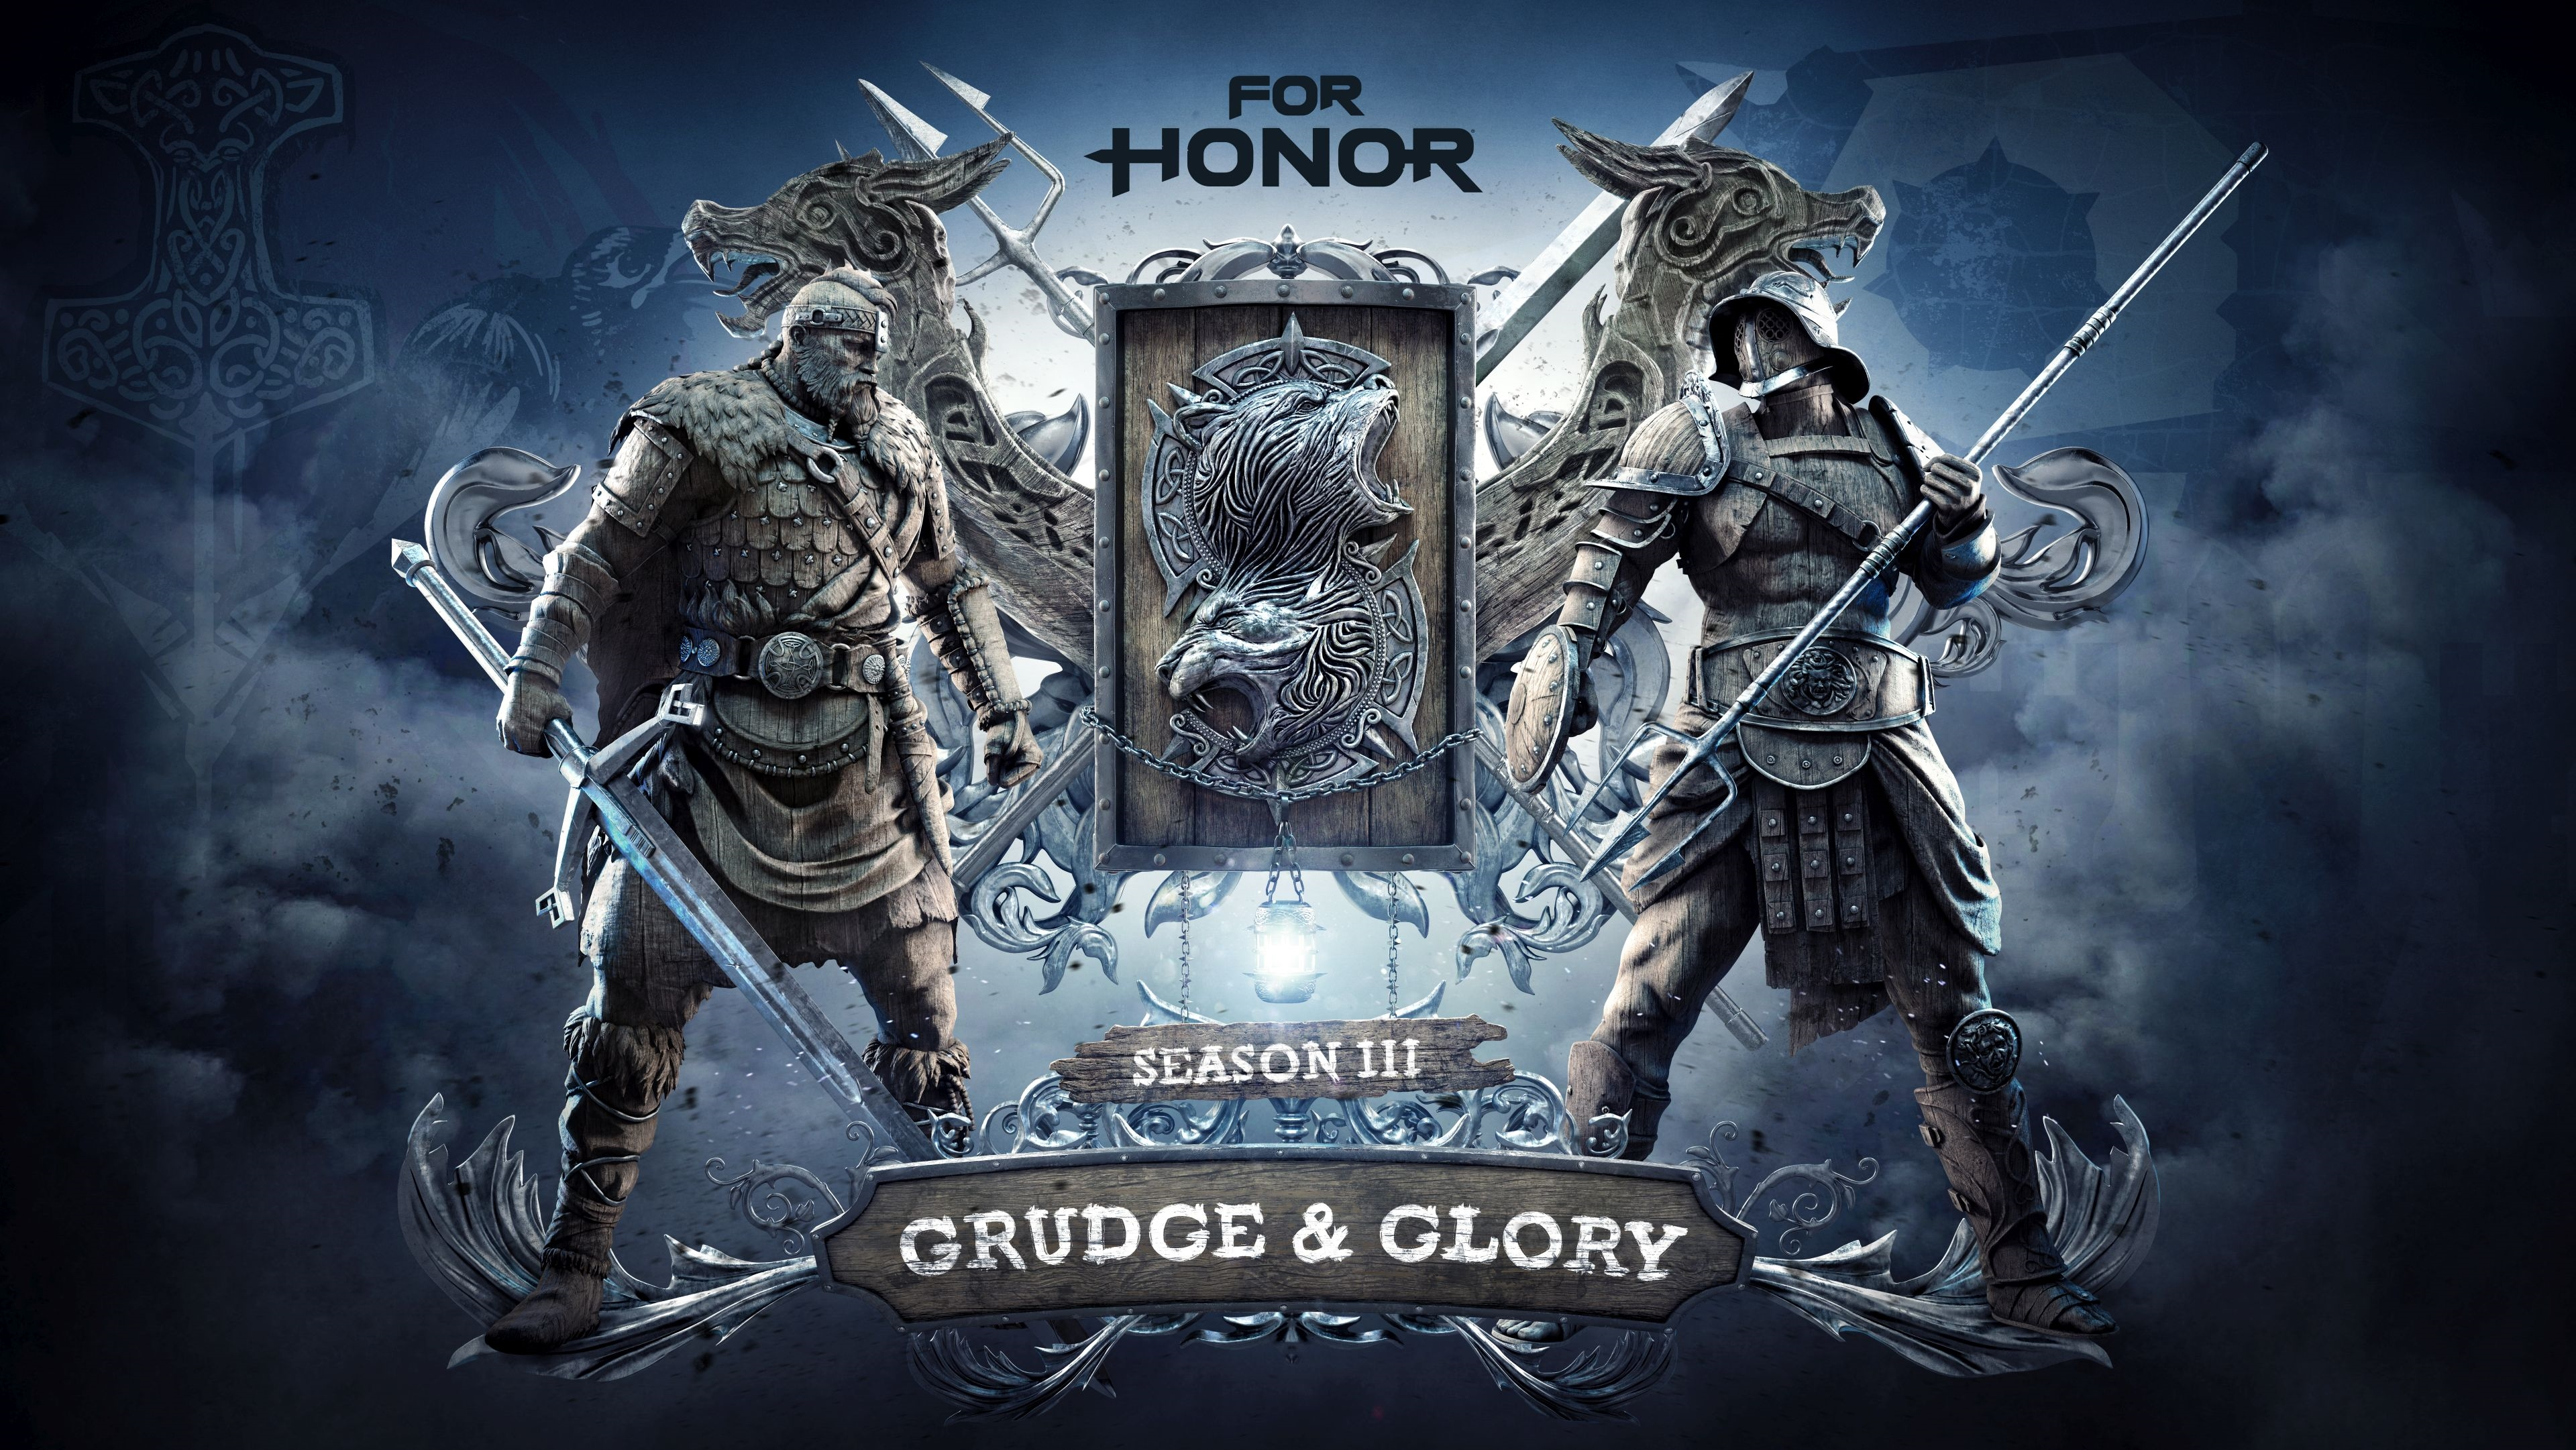 For Honor – New Heroes, Maps, and More Arrive With Season 3 on August 15 | DeviceDaily.com